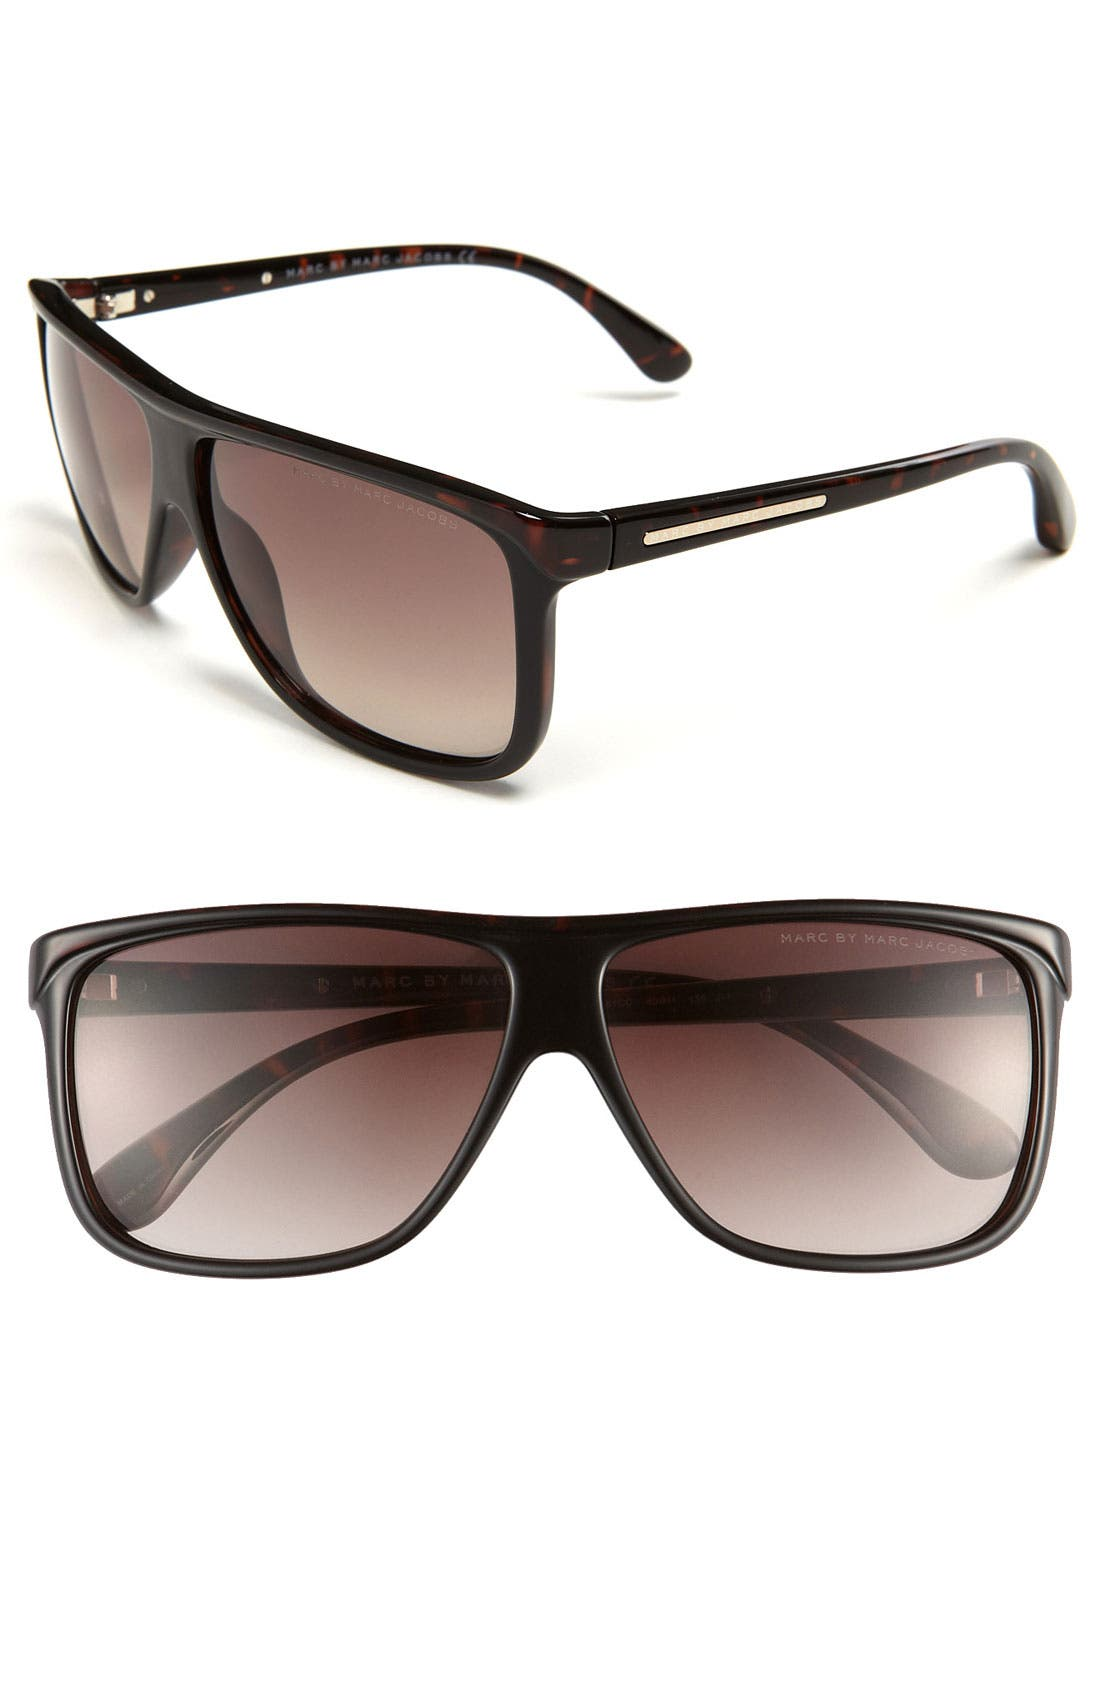 Main Image - MARC BY MARC JACOBS Retro 60mm Sunglasses